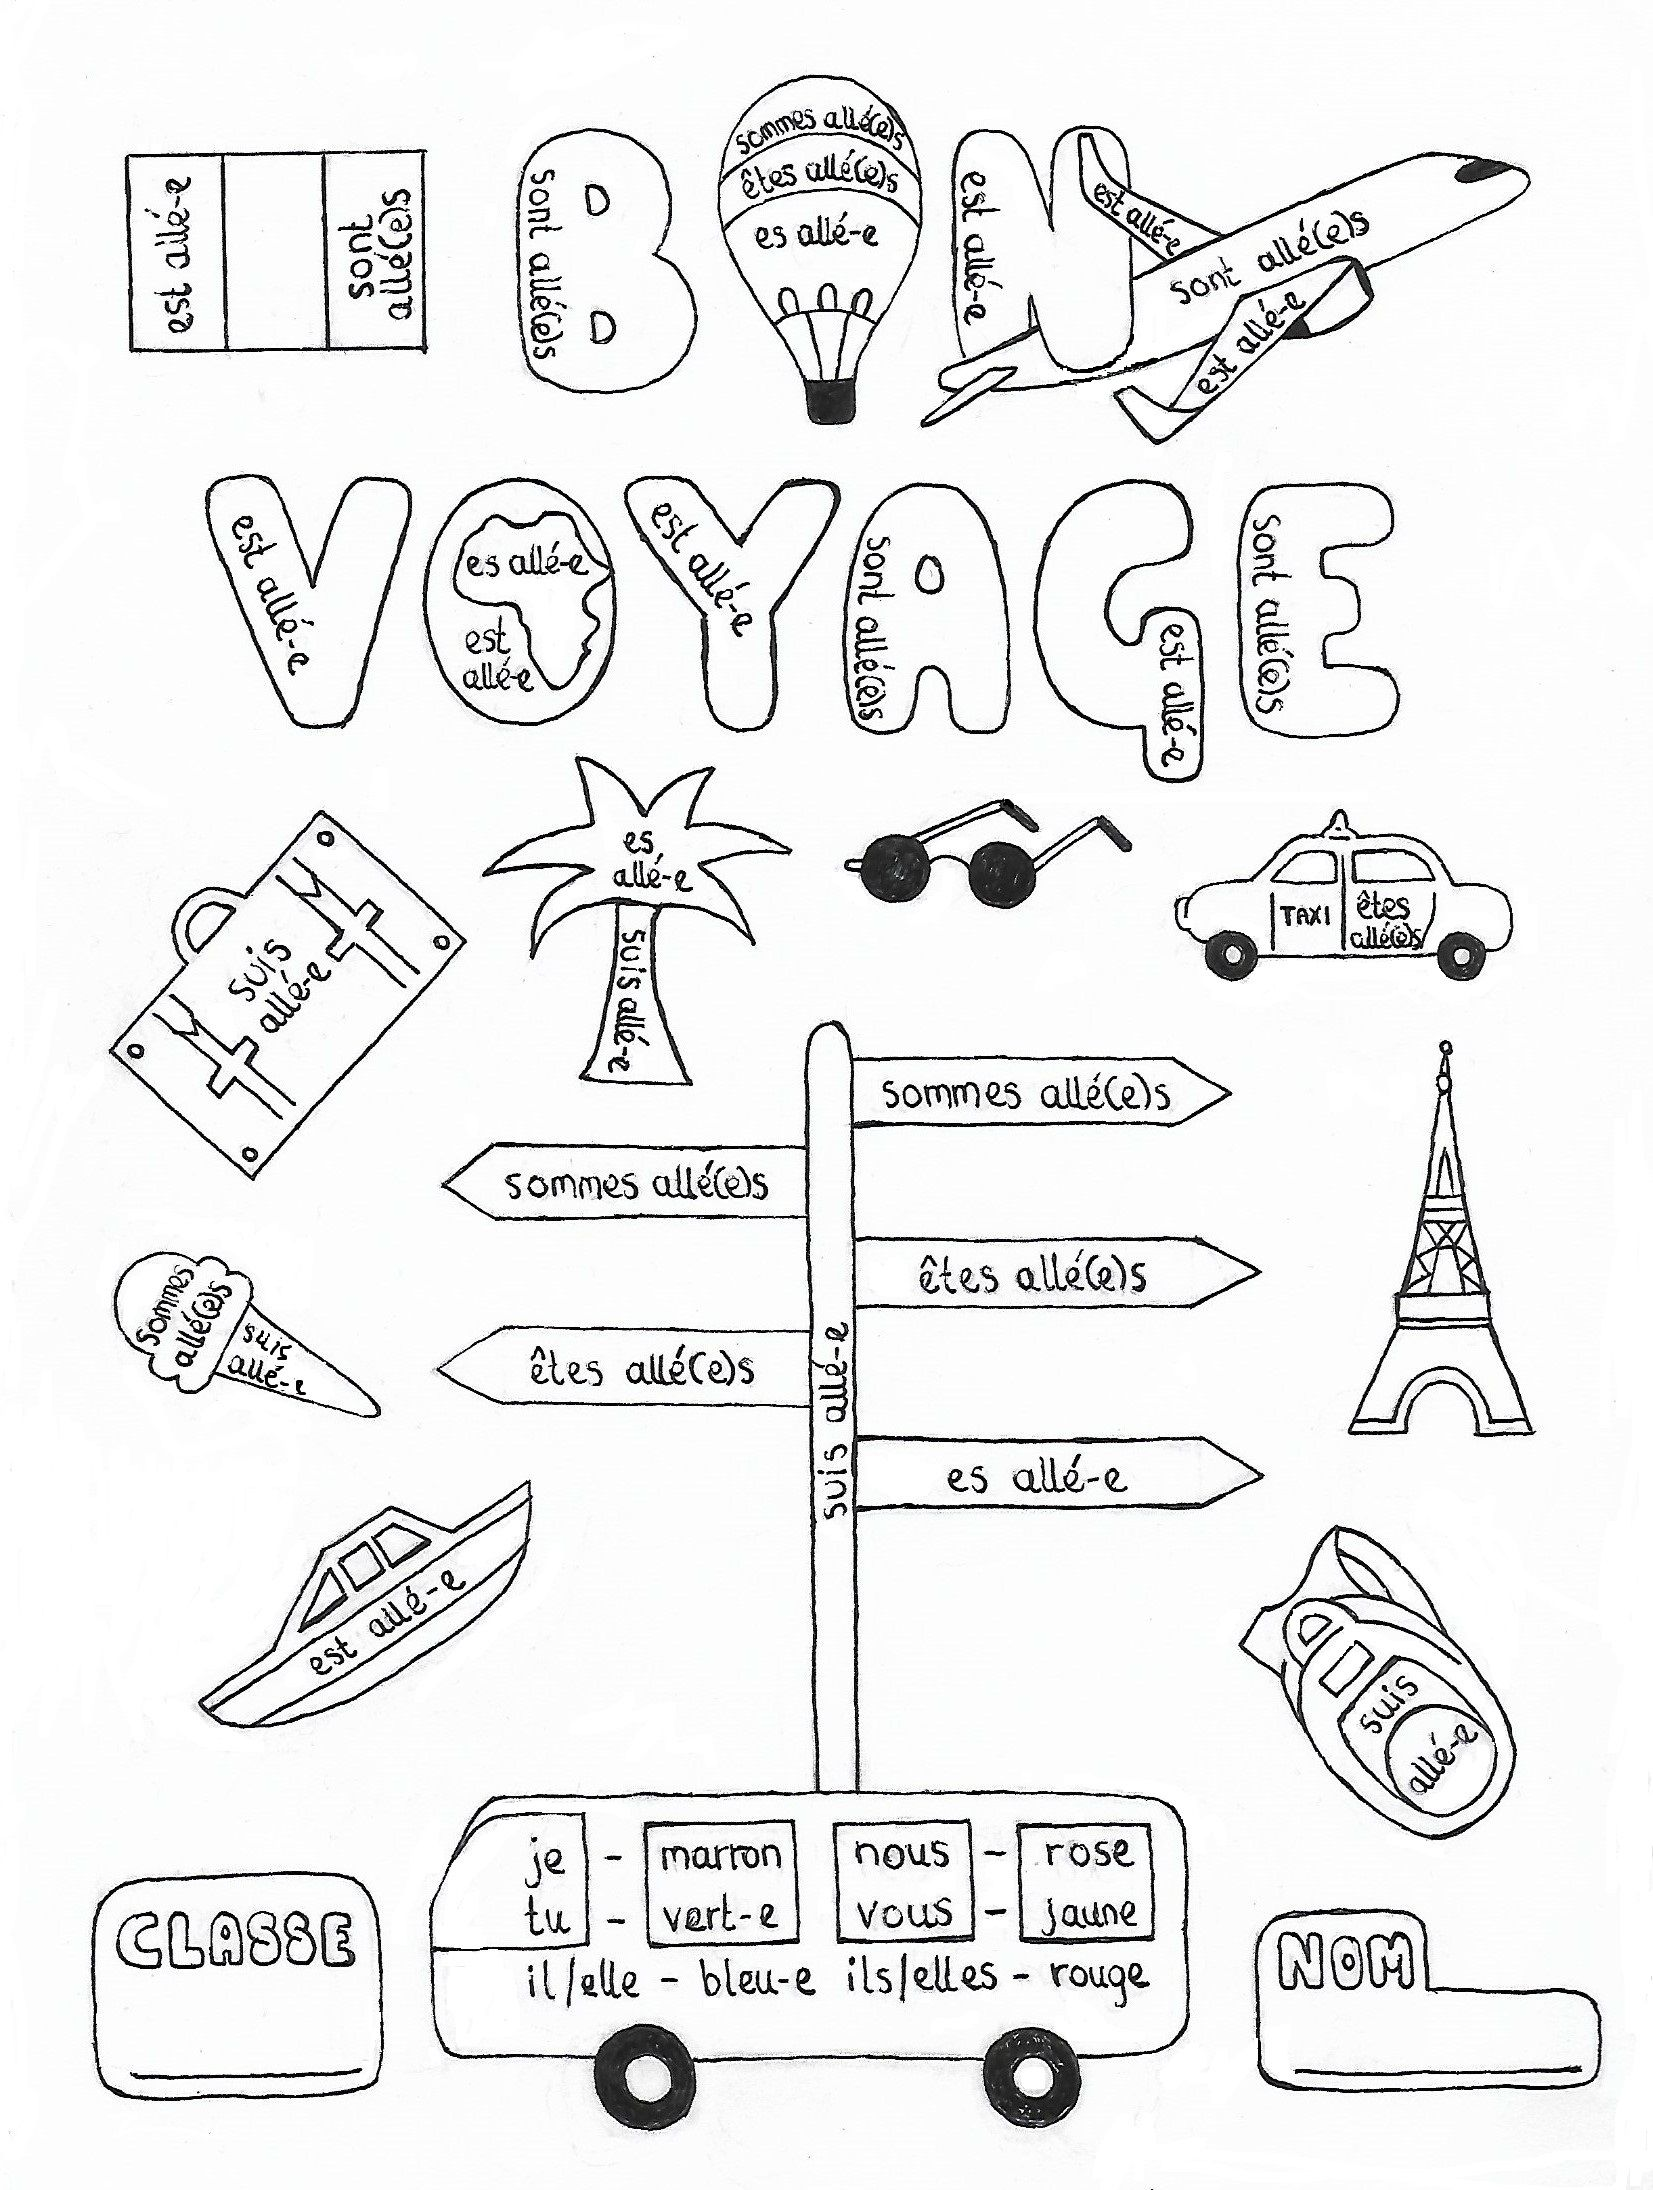 Students Will Love Coloring This Original Hand Drawn